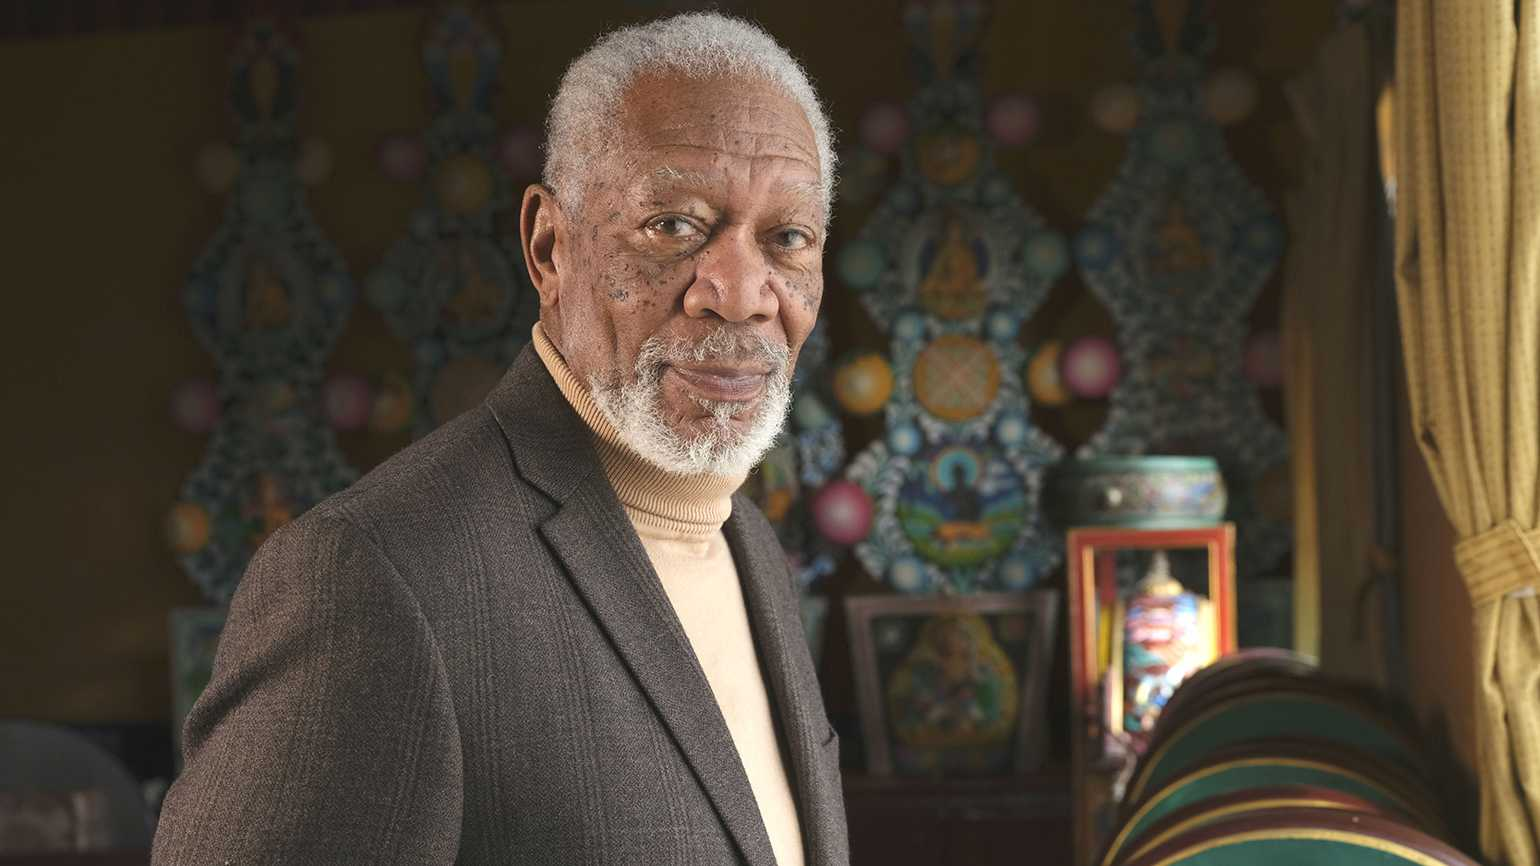 Happy 84th Birthday, Morgan Freeman! Check out some of his best moments in film here